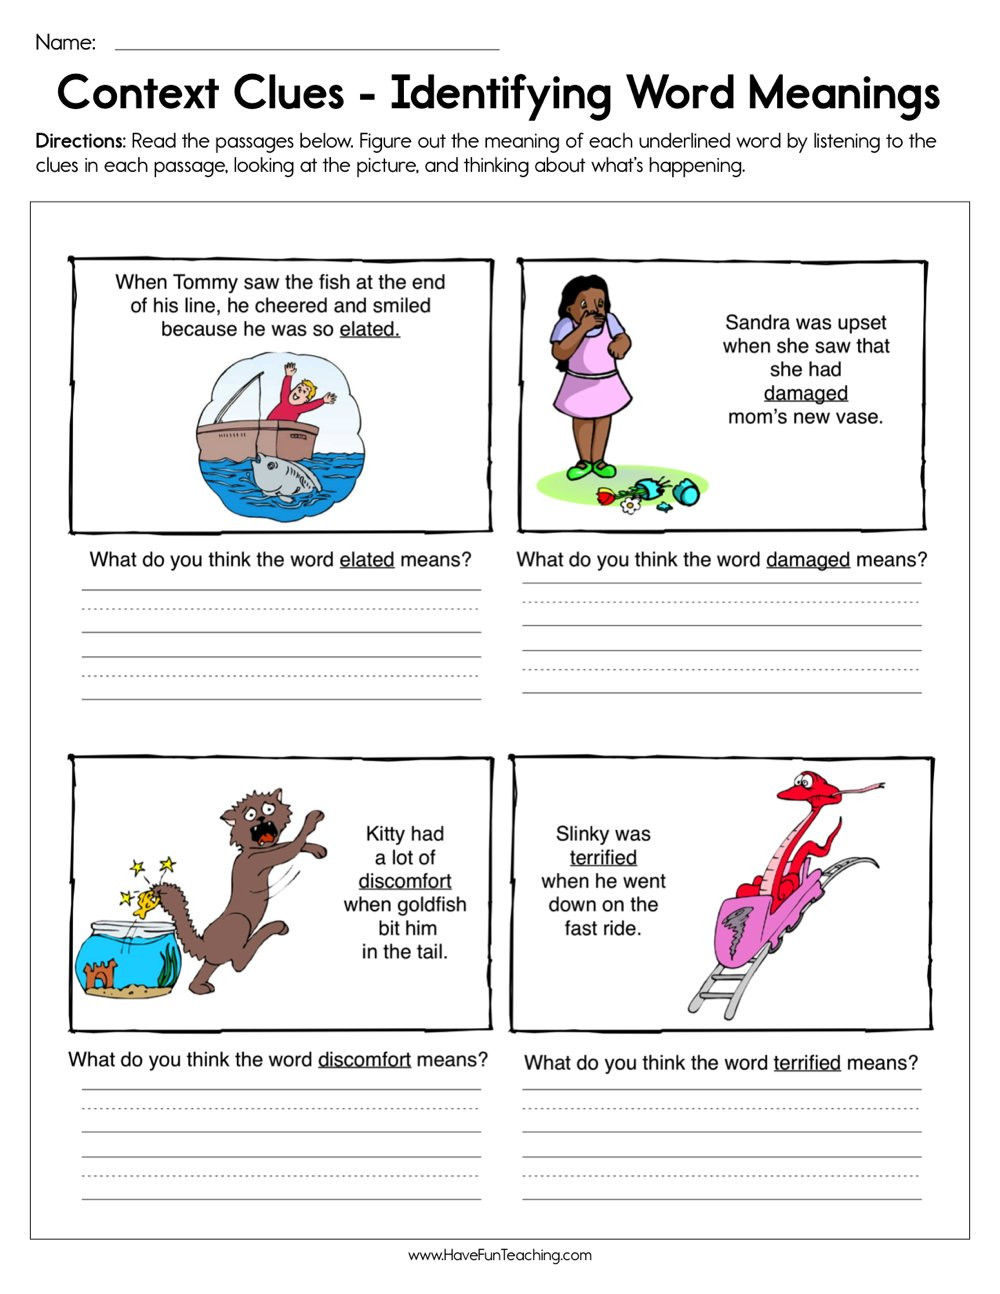 Context Clues Worksheets 1st Grade Context Clues Identifying Word Meaning Worksheet